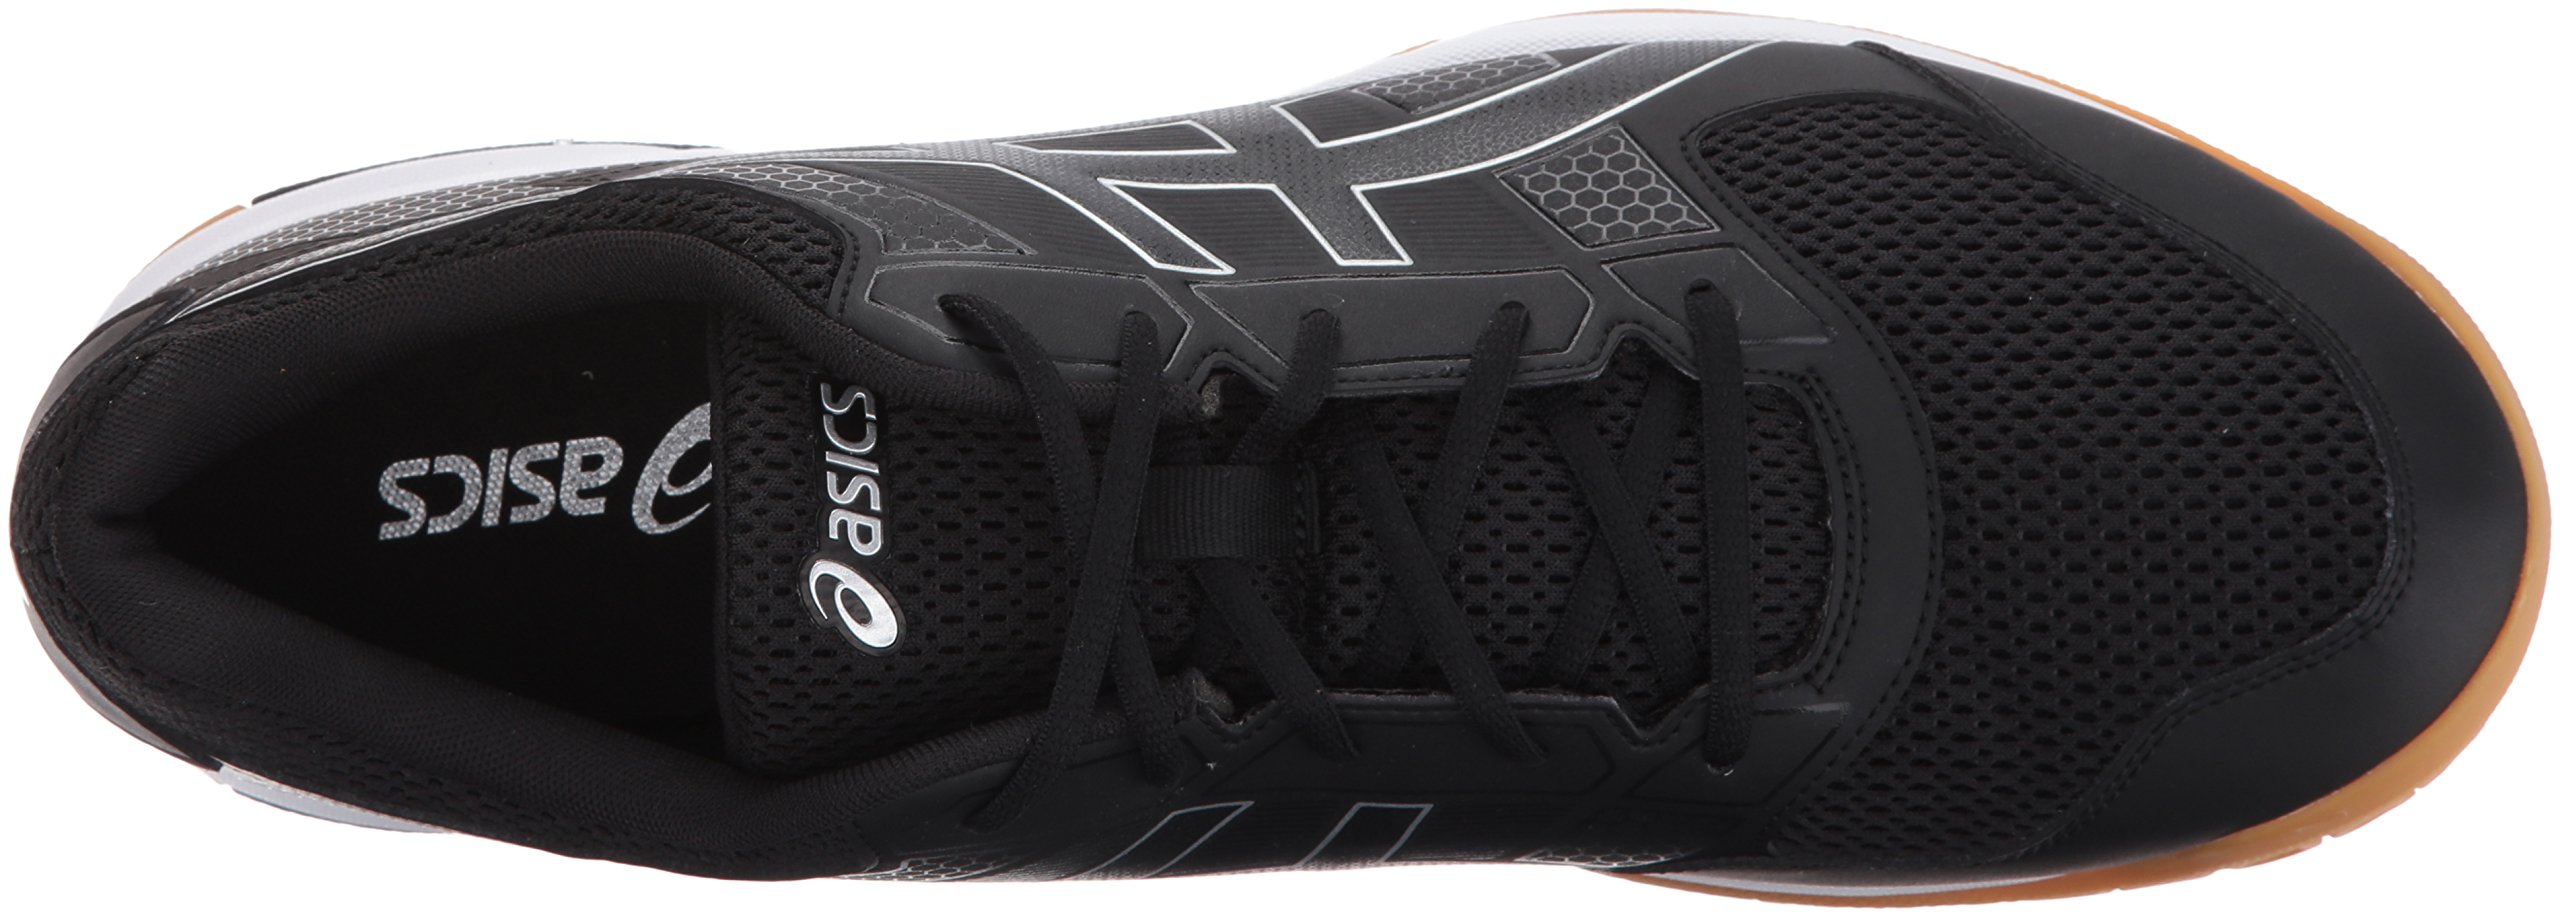 ASICS Mens Gel-Rocket 8 Volleyball Shoe Black/White, 7.5 Medium US by ASICS (Image #8)